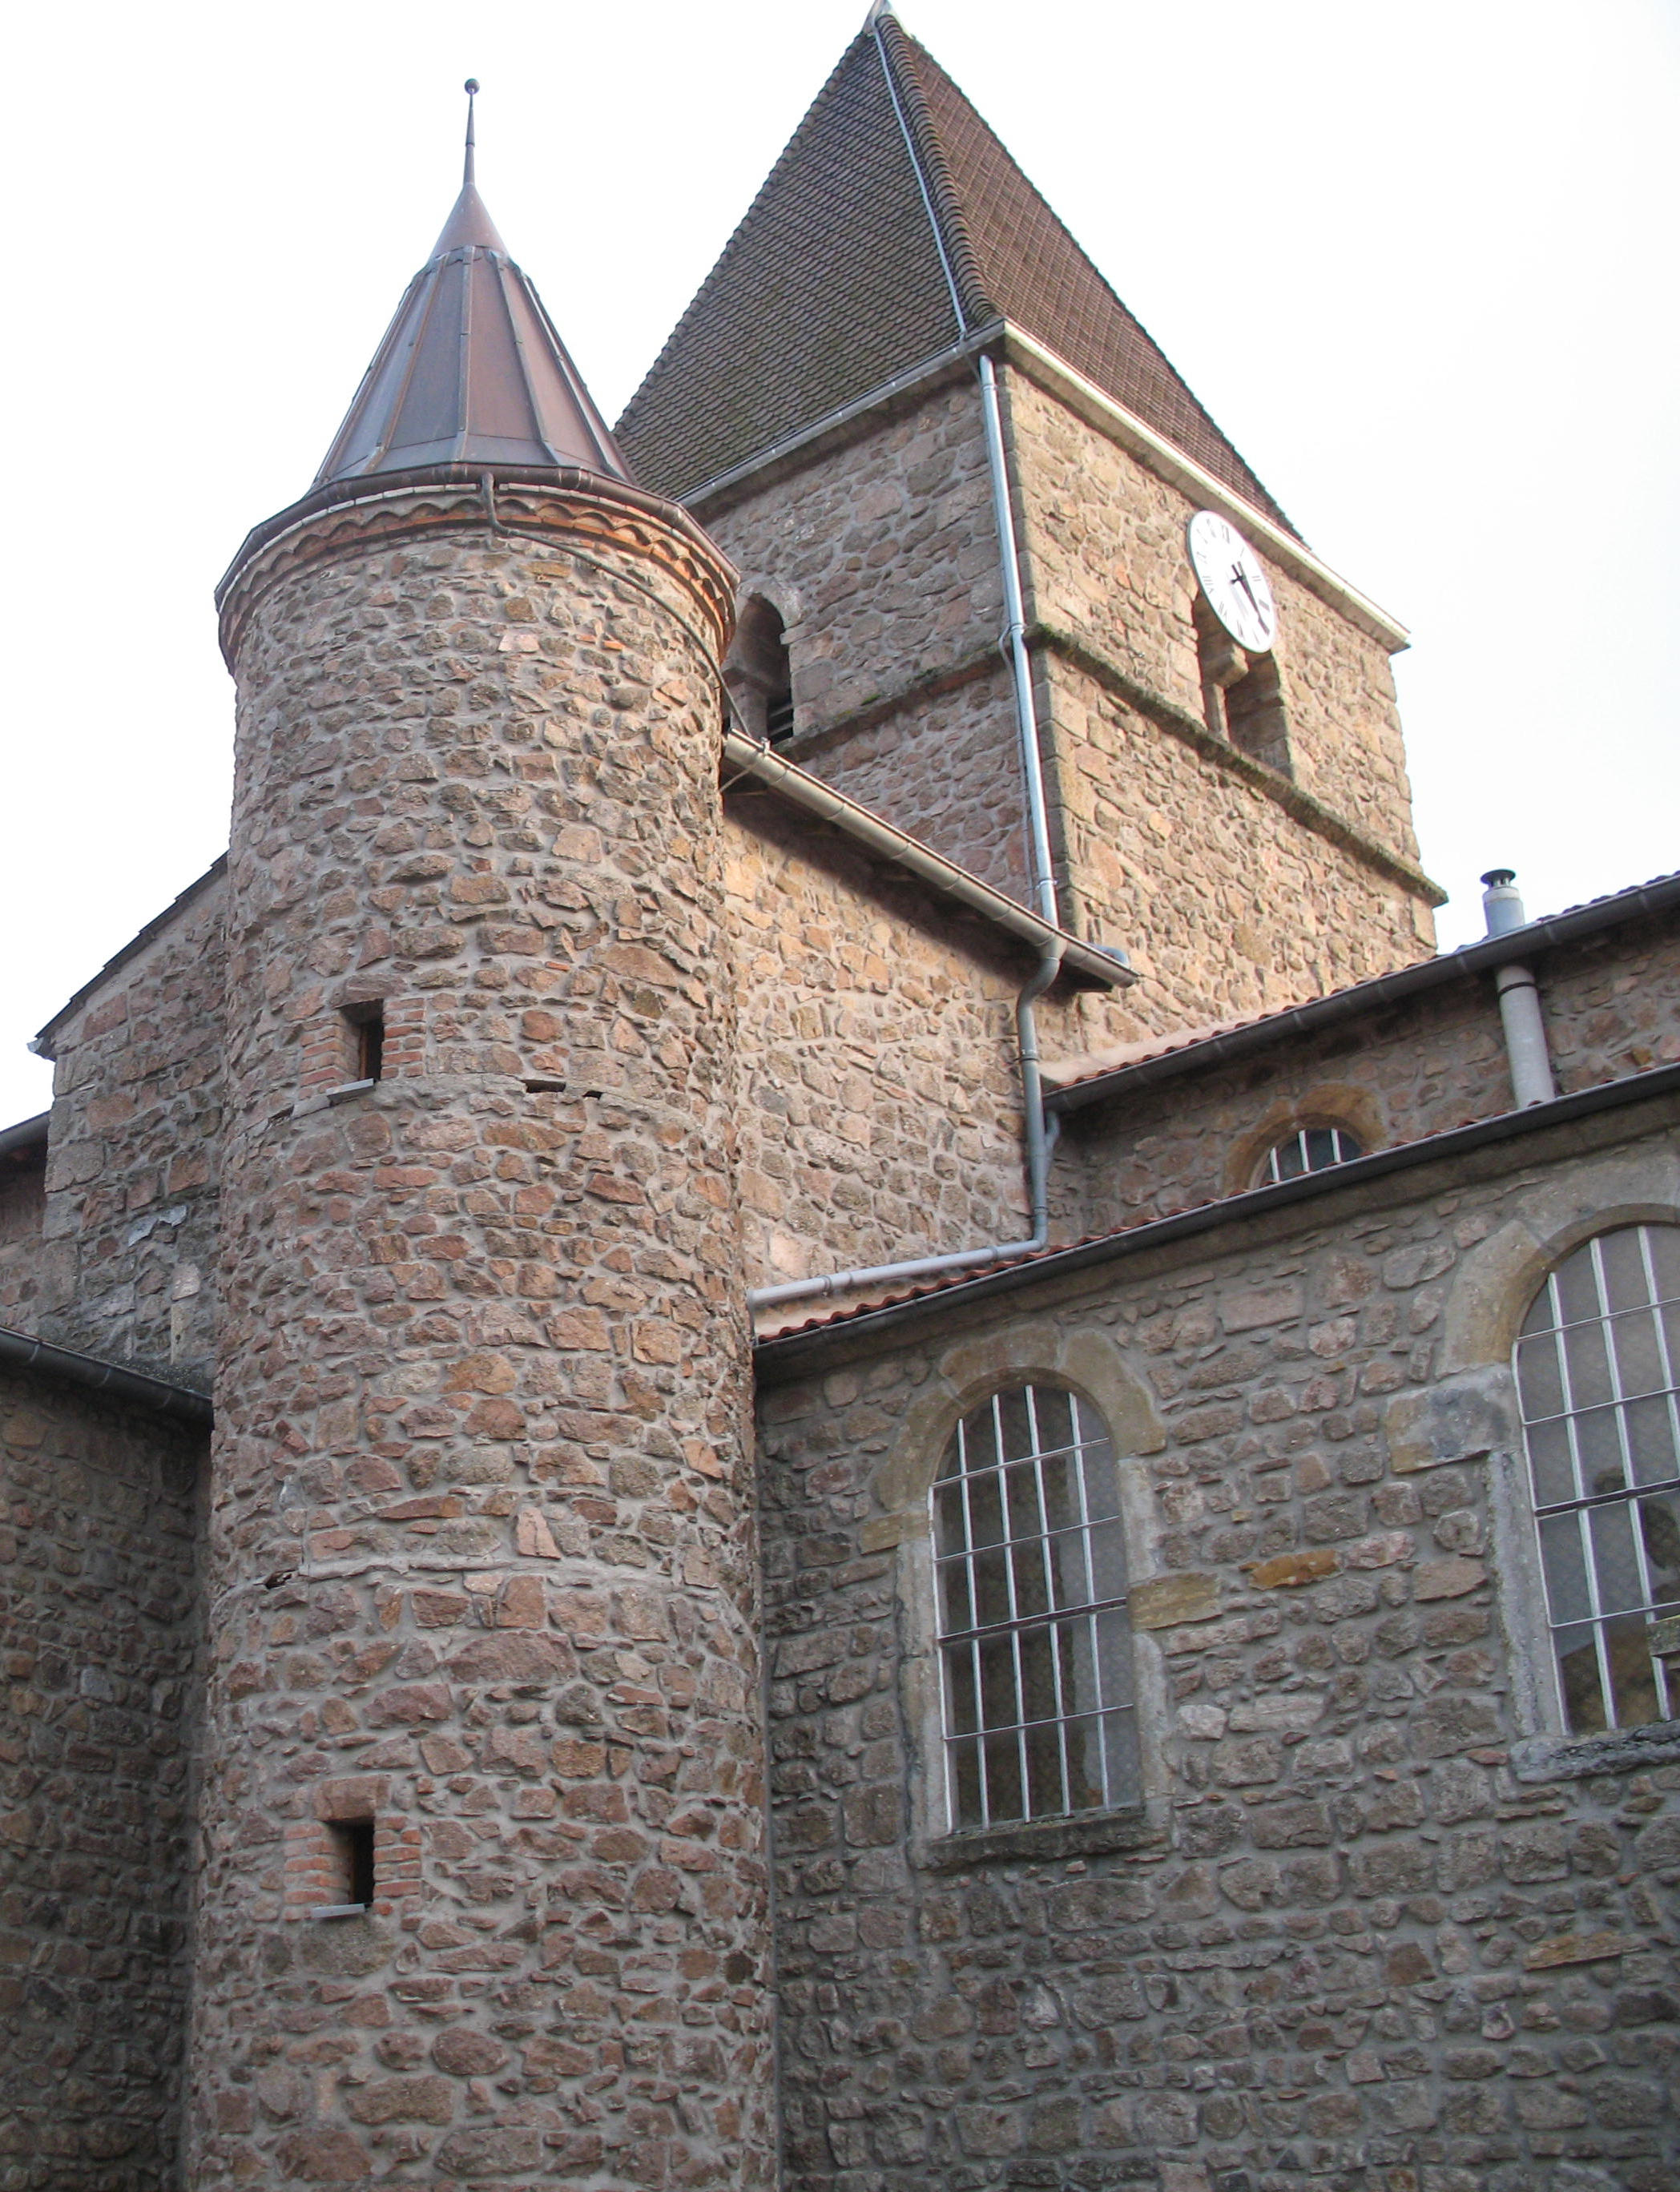 http://upload.wikimedia.org/wikipedia/commons/4/45/Saint-Jacques-des-Arr%C3%AAts_1.jpg